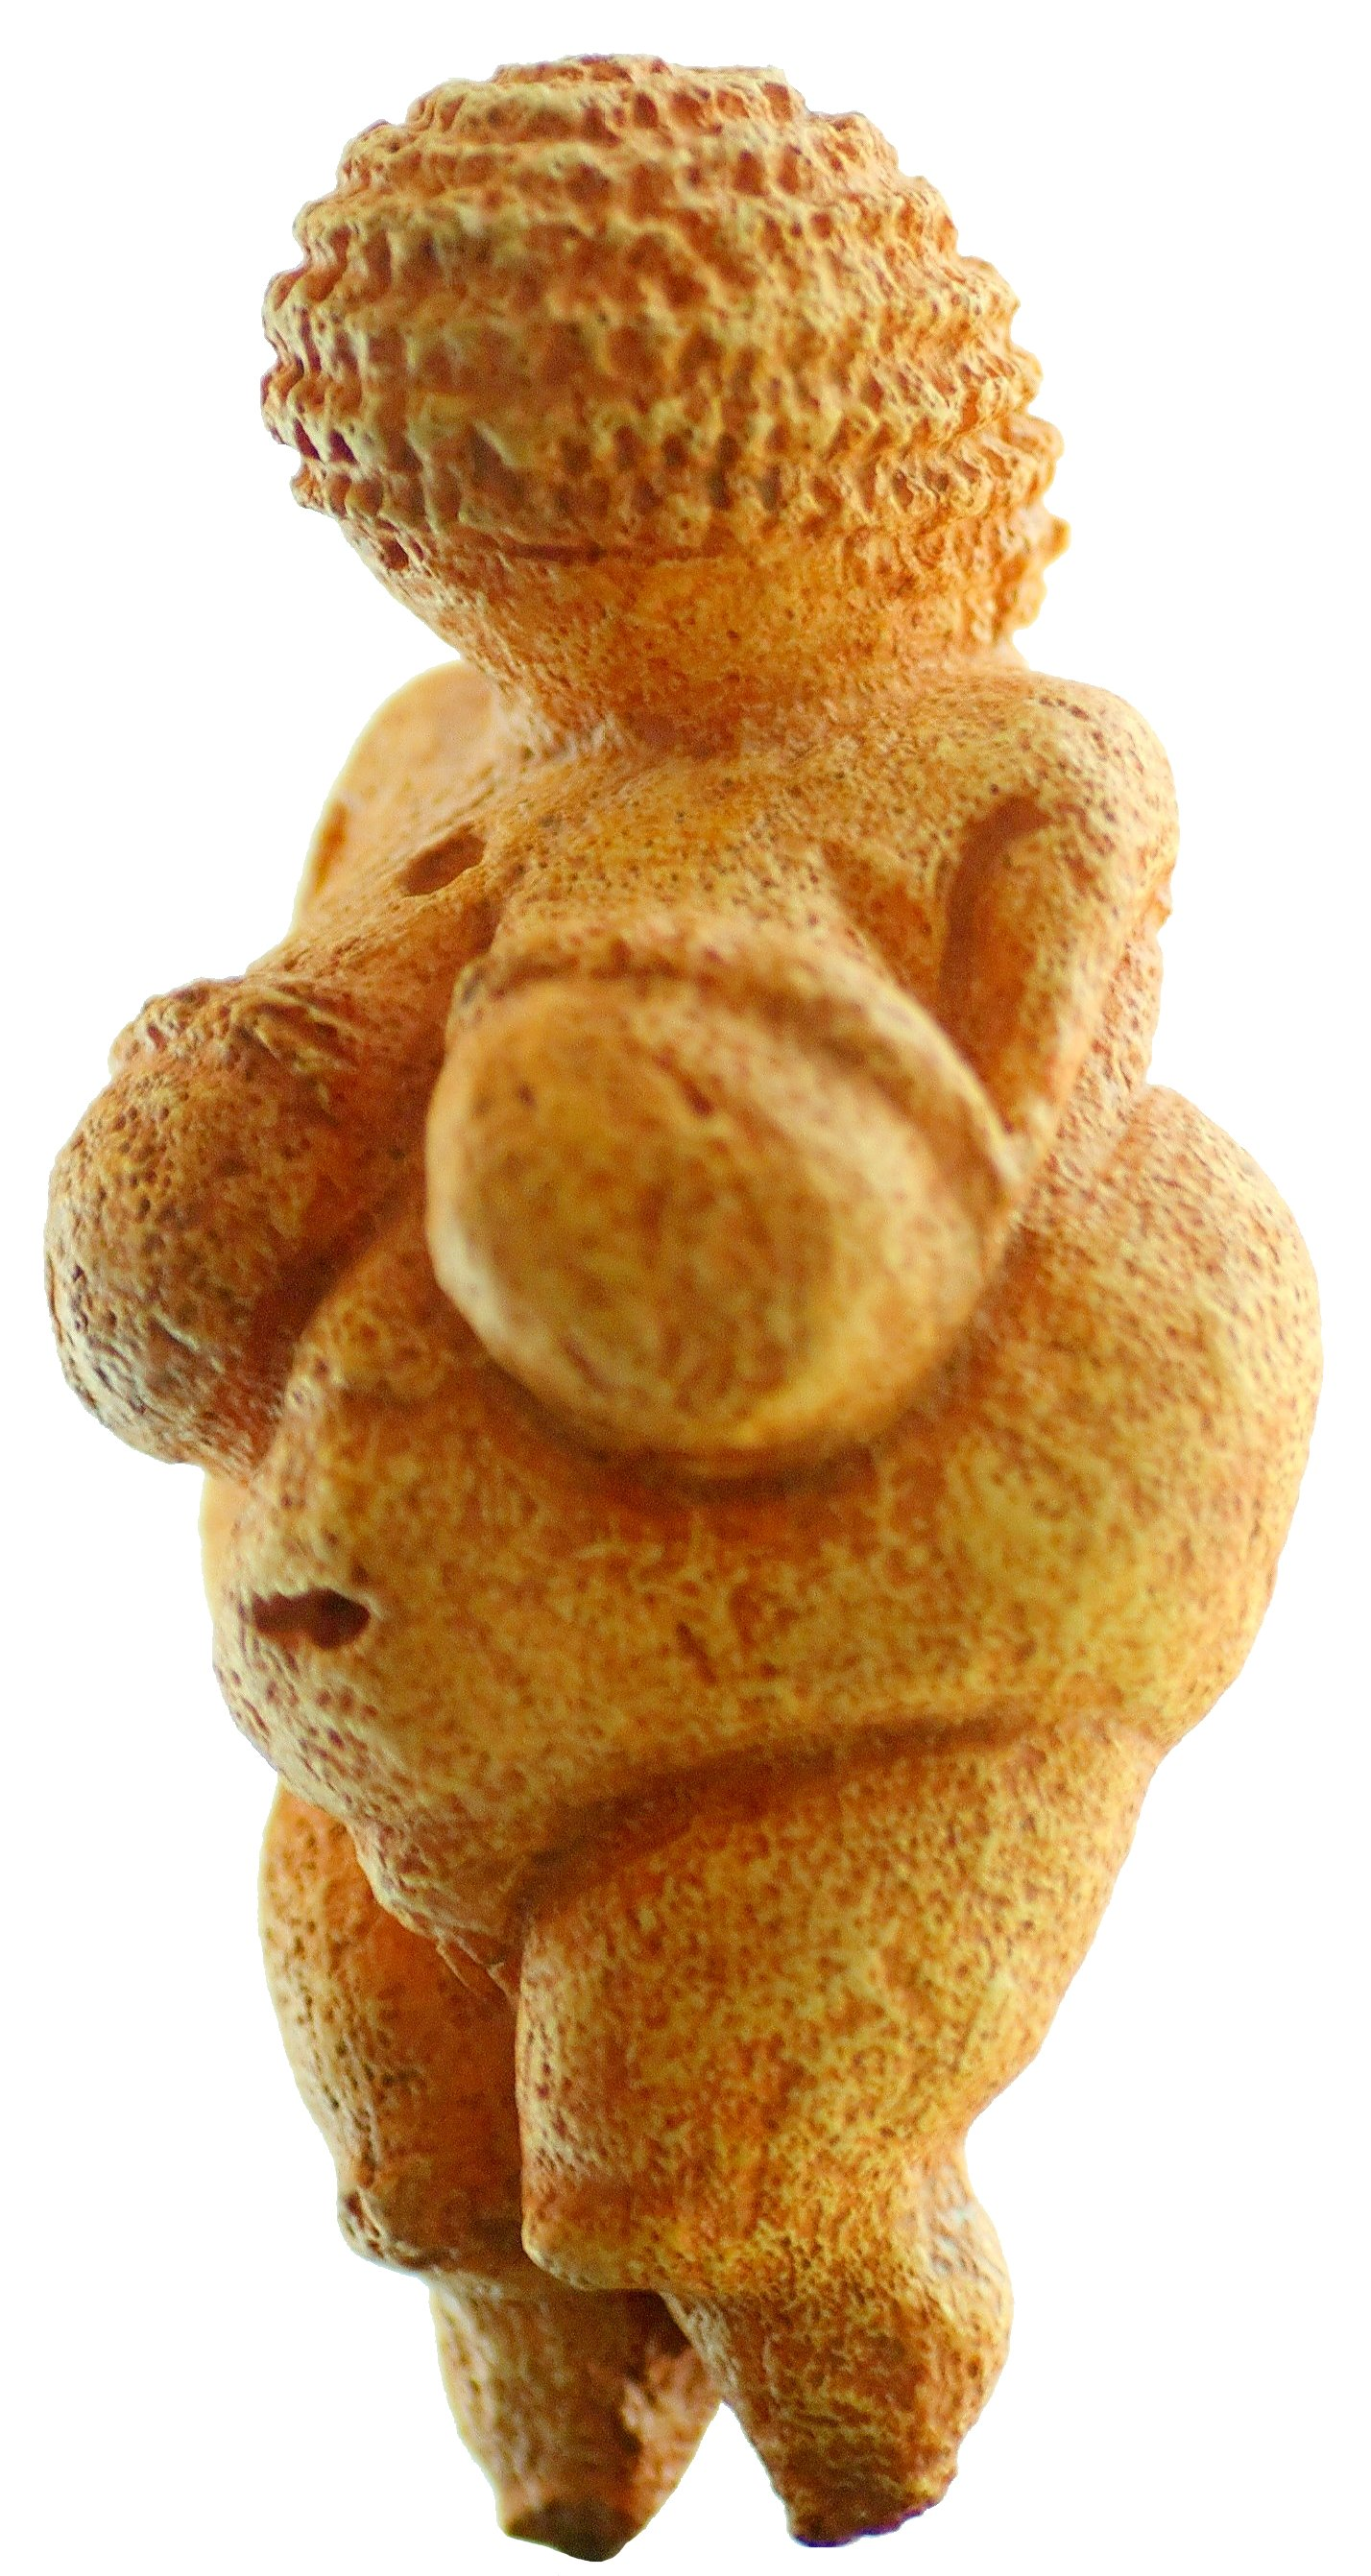 A sand-colored faceless statue with a large, exaggerated bust. The head features wavy engravings, believed to be braids.